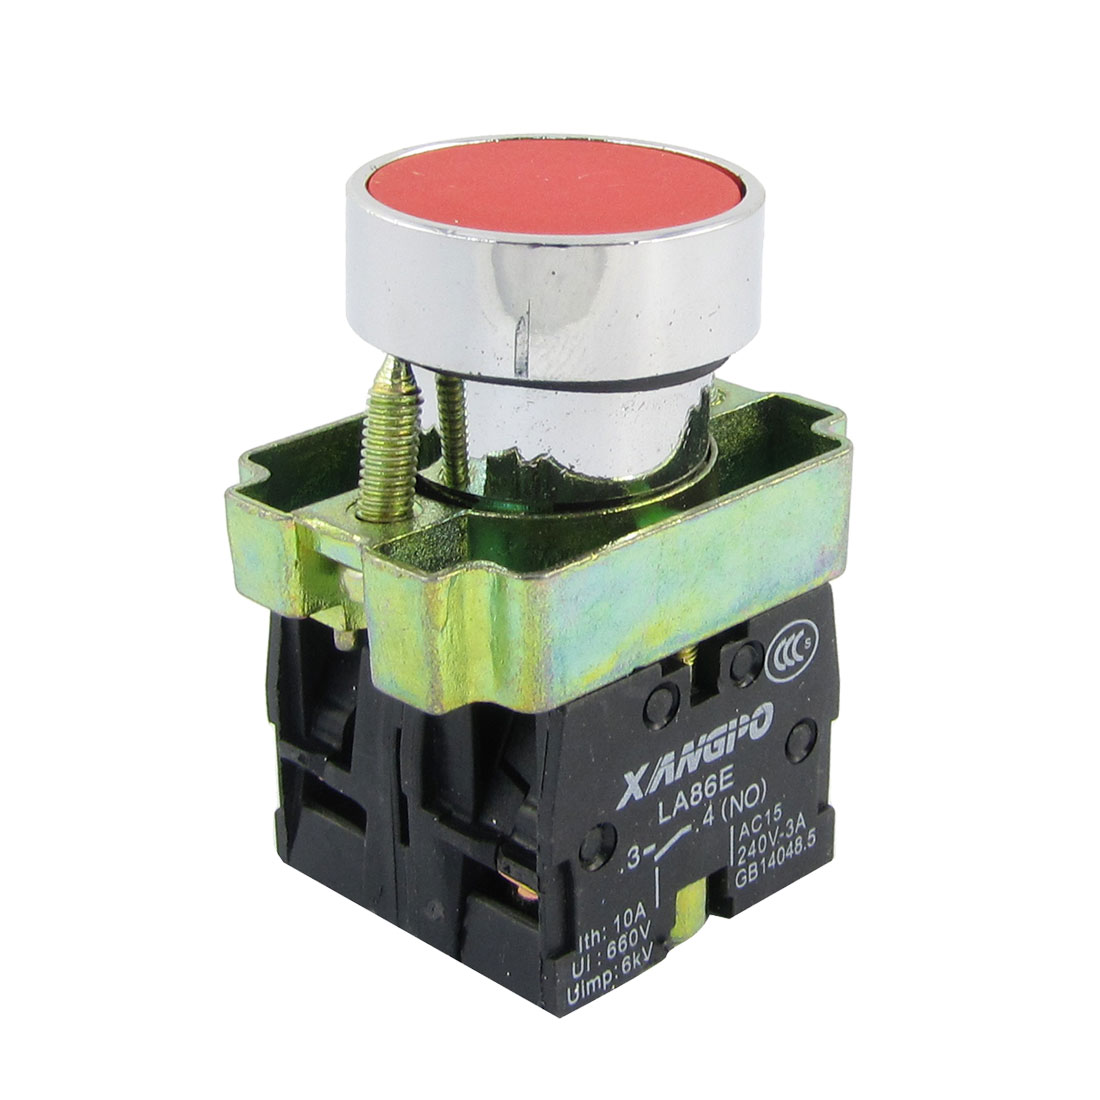 21mm Panel Mounted Momentary Red Flat Pushbutton Switch AC 240V 3A DPST